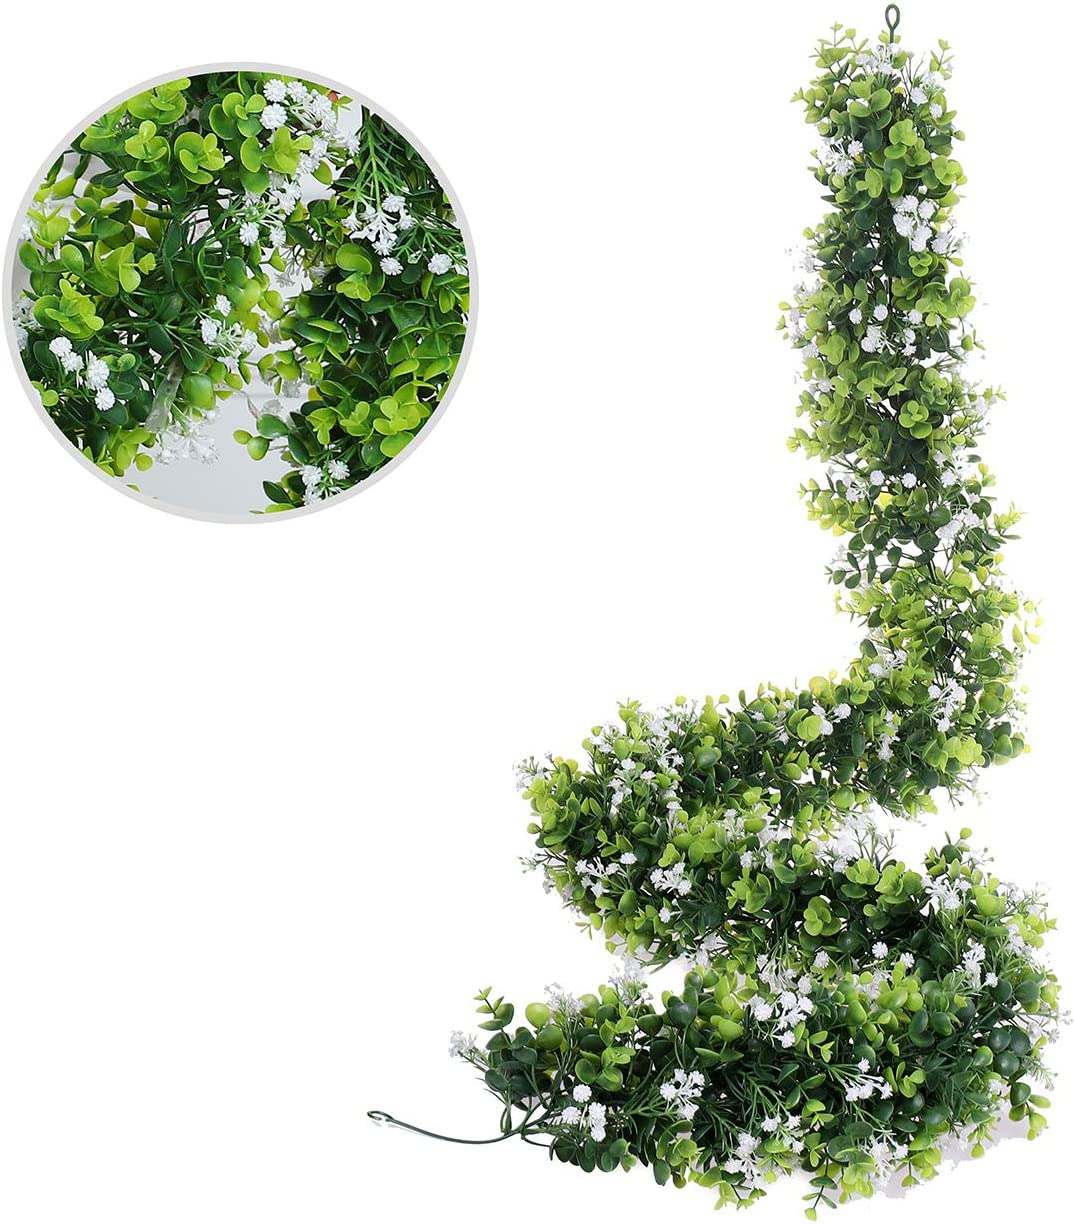 70 inches Fake Boxwood Baby's Breath Gypsophila Vine Flowers Garland Plants Artificial Flower Hanging Eucalyptus Ivy Home Hotel Office Wedding Party Garden Craft Art Décor Decoration (White)